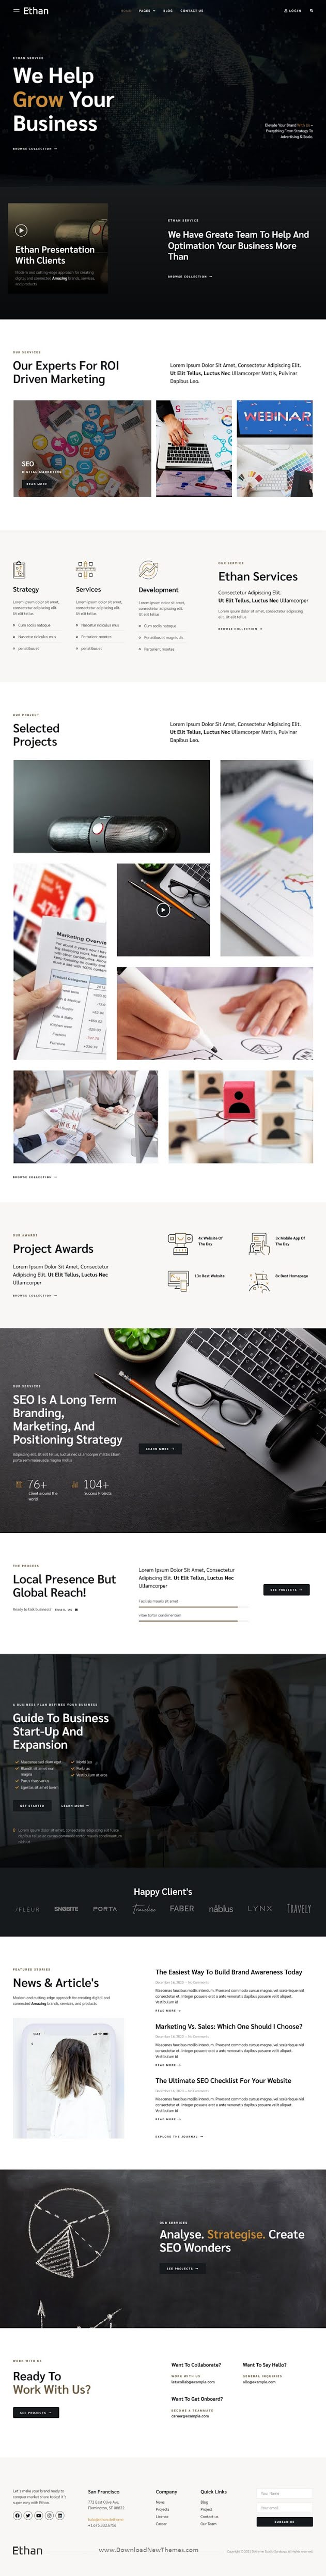 Online Marketing Agency Elementor Template Kit